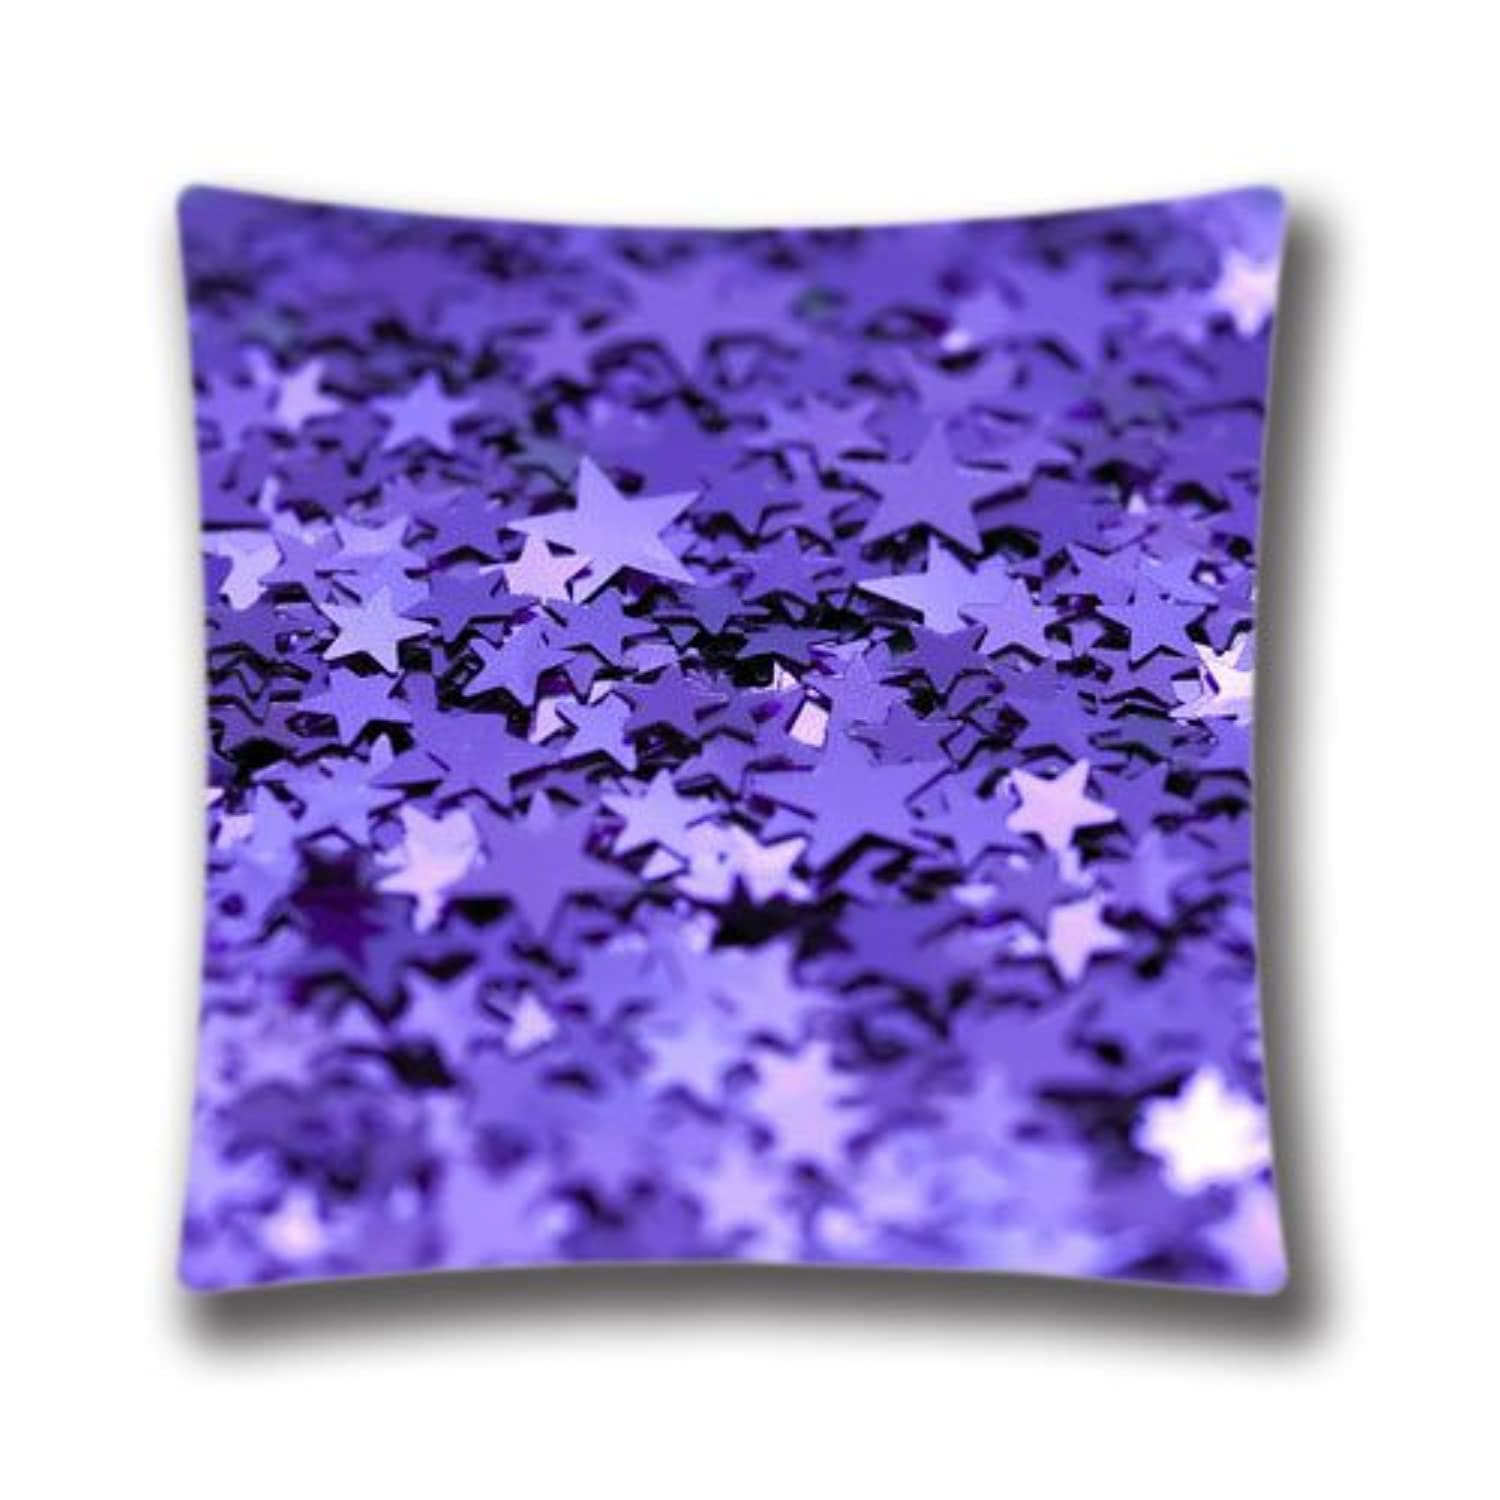 Shop Wayfair for all the best Purple Christmas Pillows. Enjoy Free Shipping on most stuff, even big stuff.